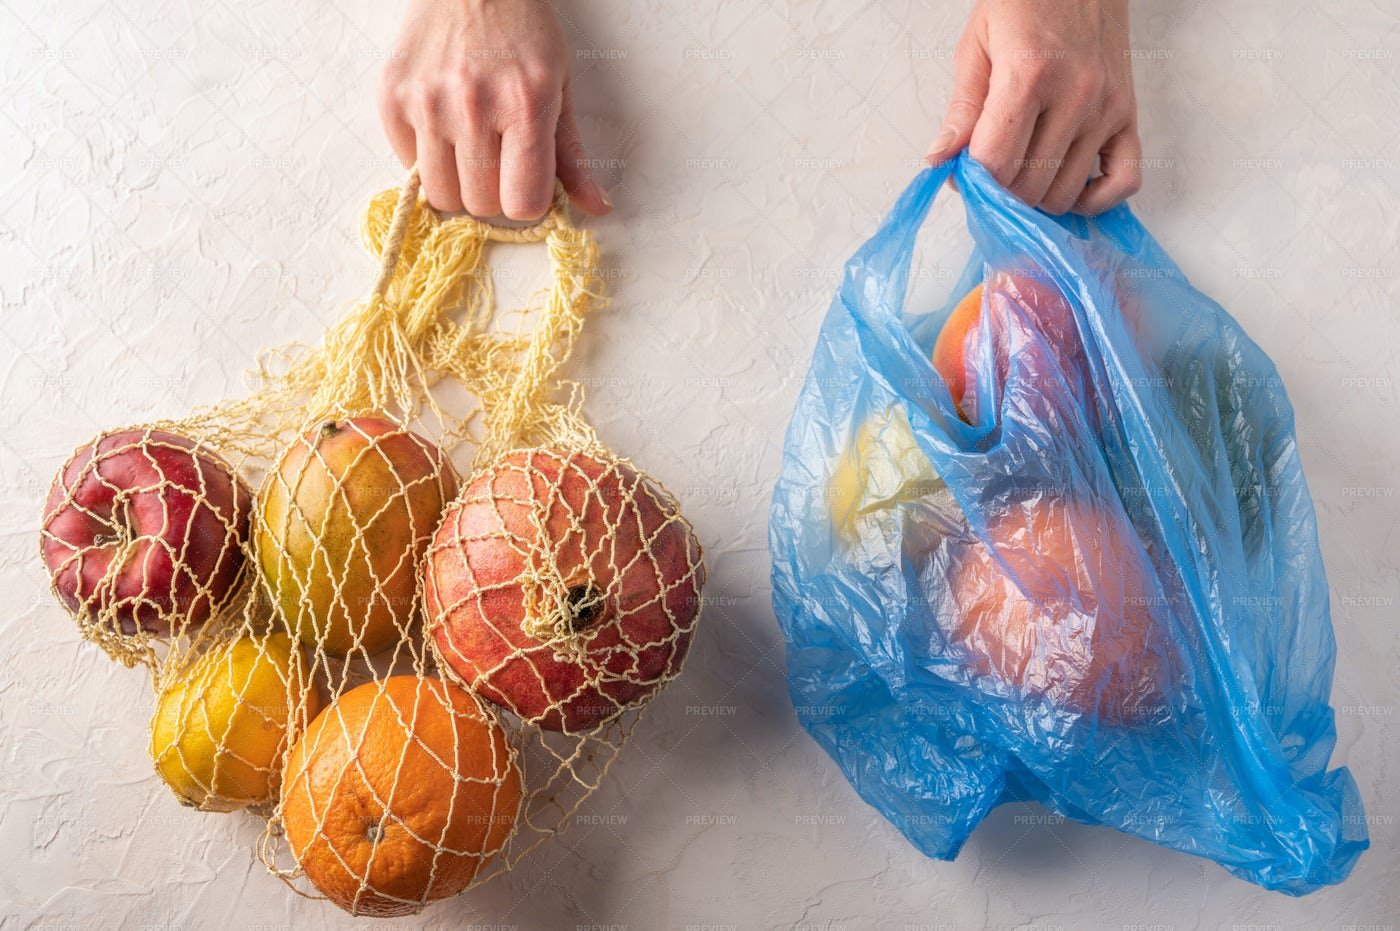 Plastic And Mesh Fruit Bags: Stock Photos